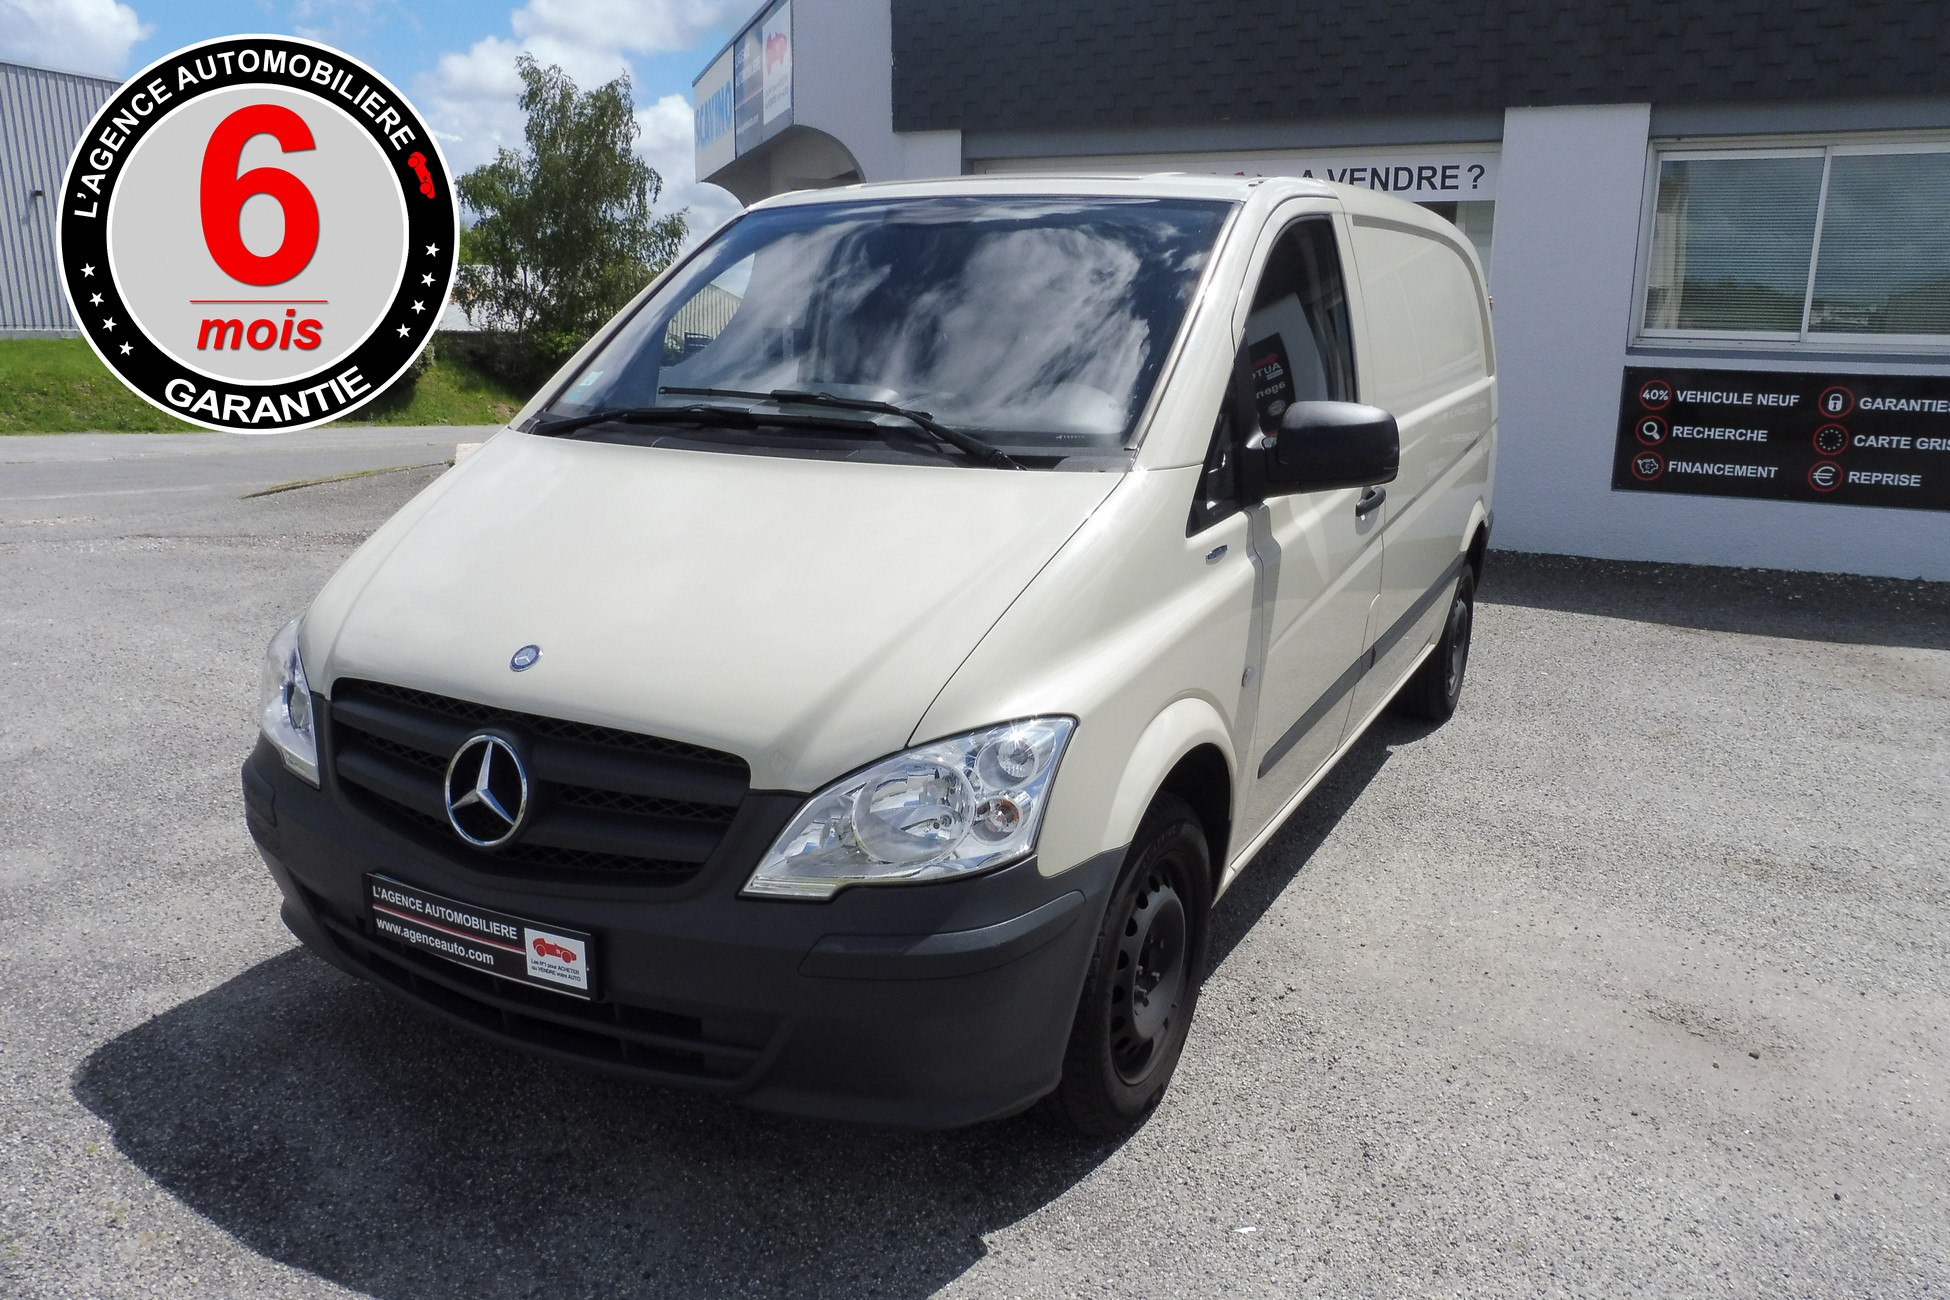 mercedes vito cdi 113 fourgon court compact 136cv occasion lorient pas cher voiture occasion. Black Bedroom Furniture Sets. Home Design Ideas